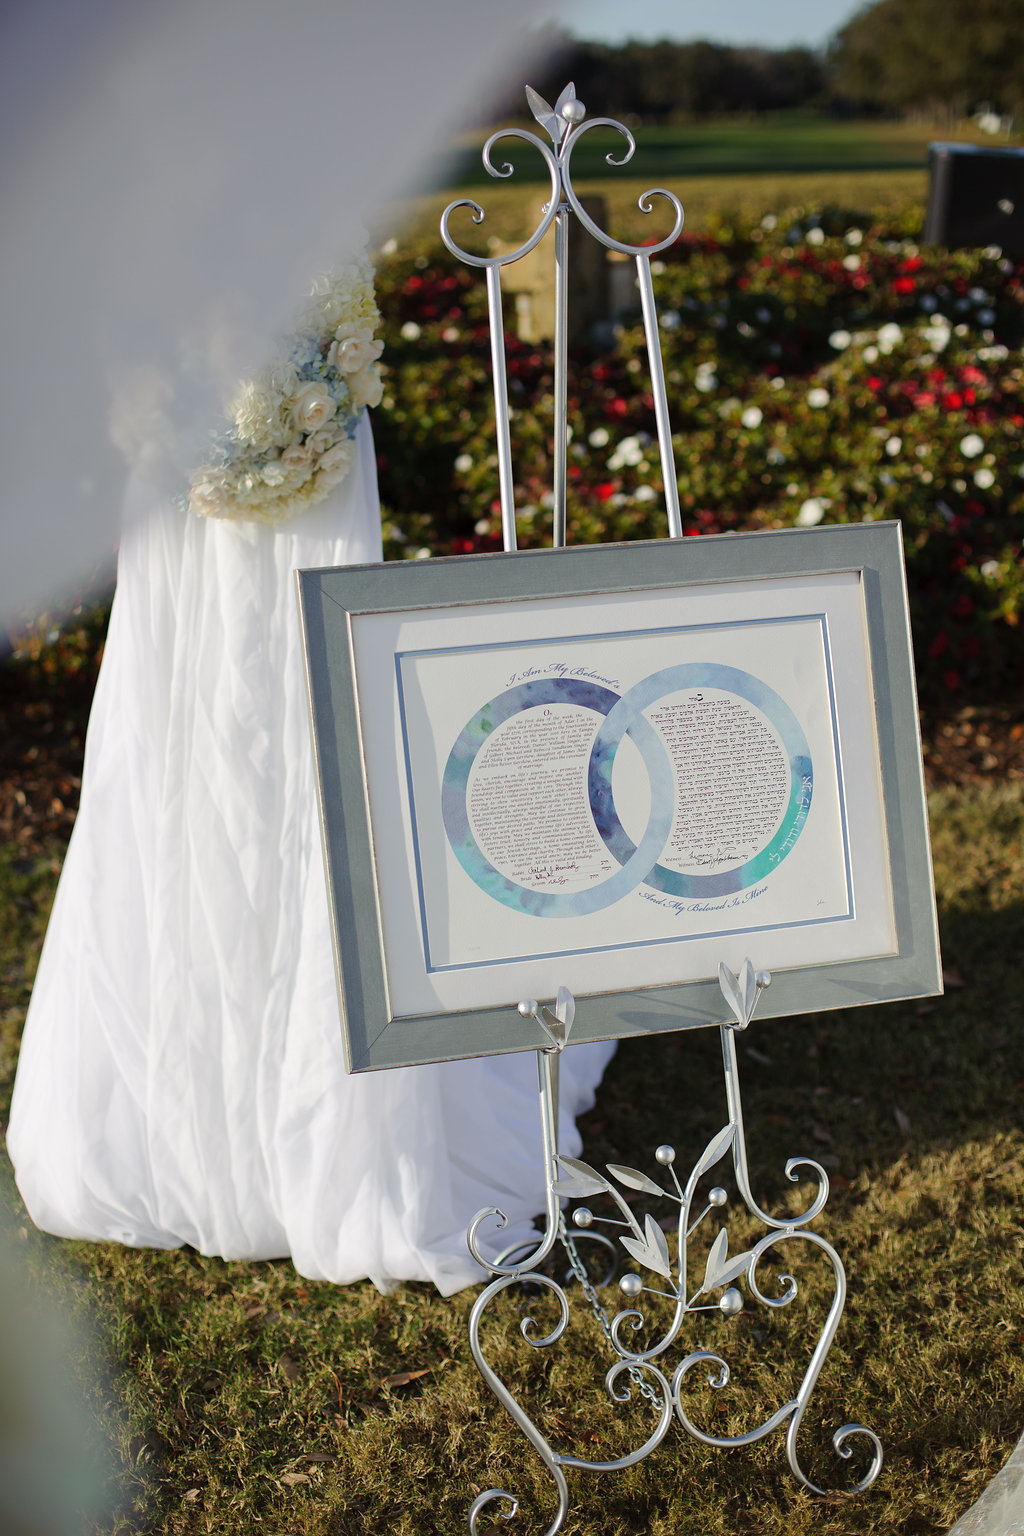 Tradition and elegance were combined during the ceremony, with a ketubah displayed for all to admire under the chuppah adorned with roses and hydrangea.